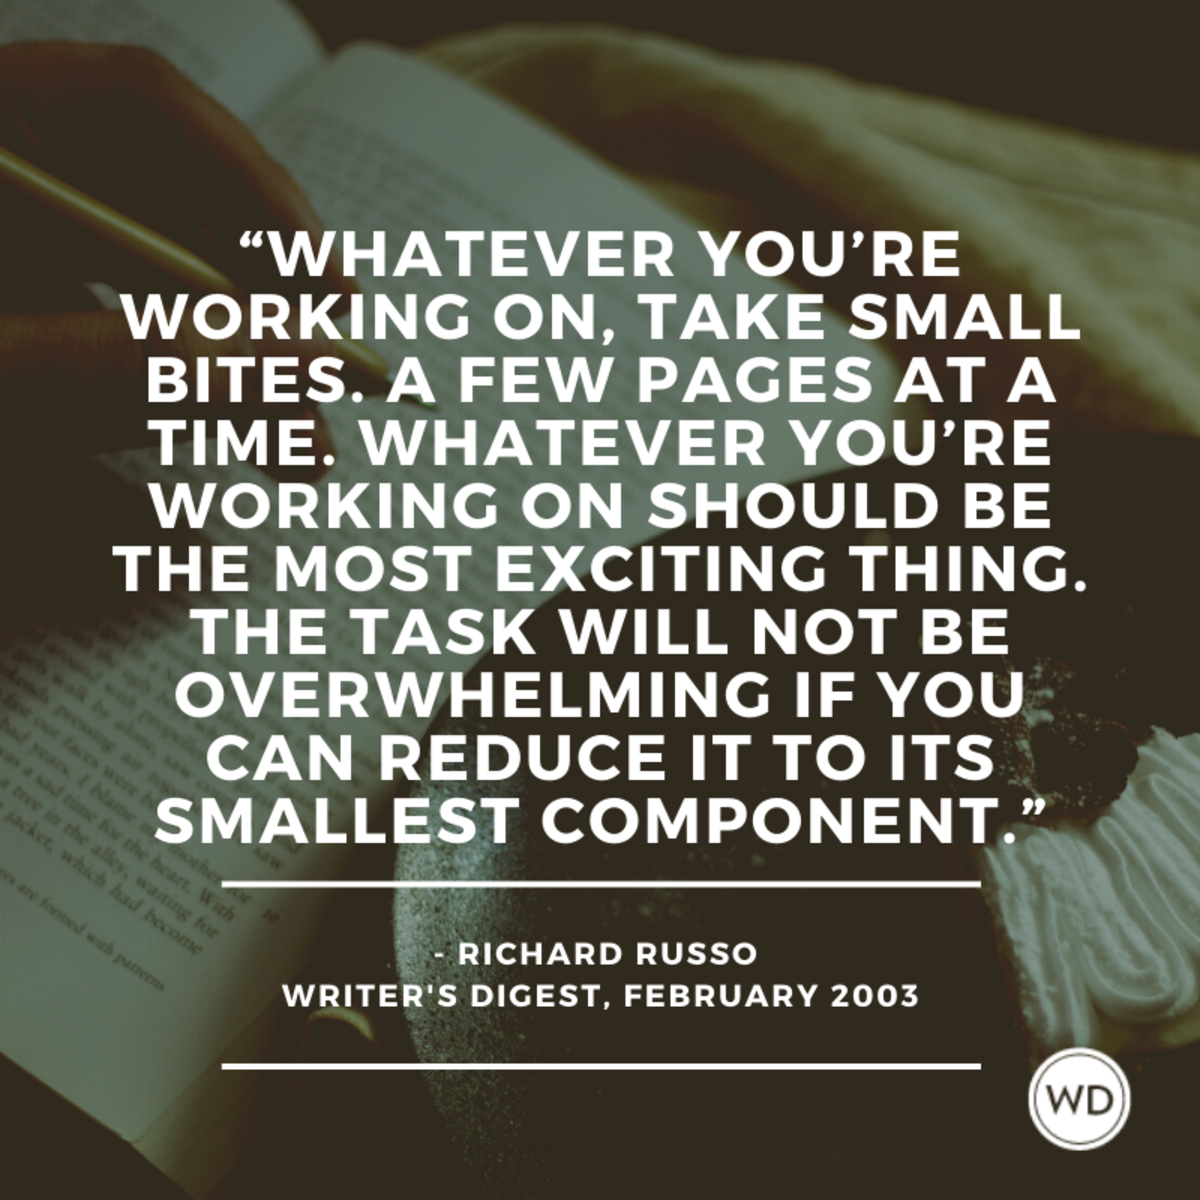 Richard Russo quote